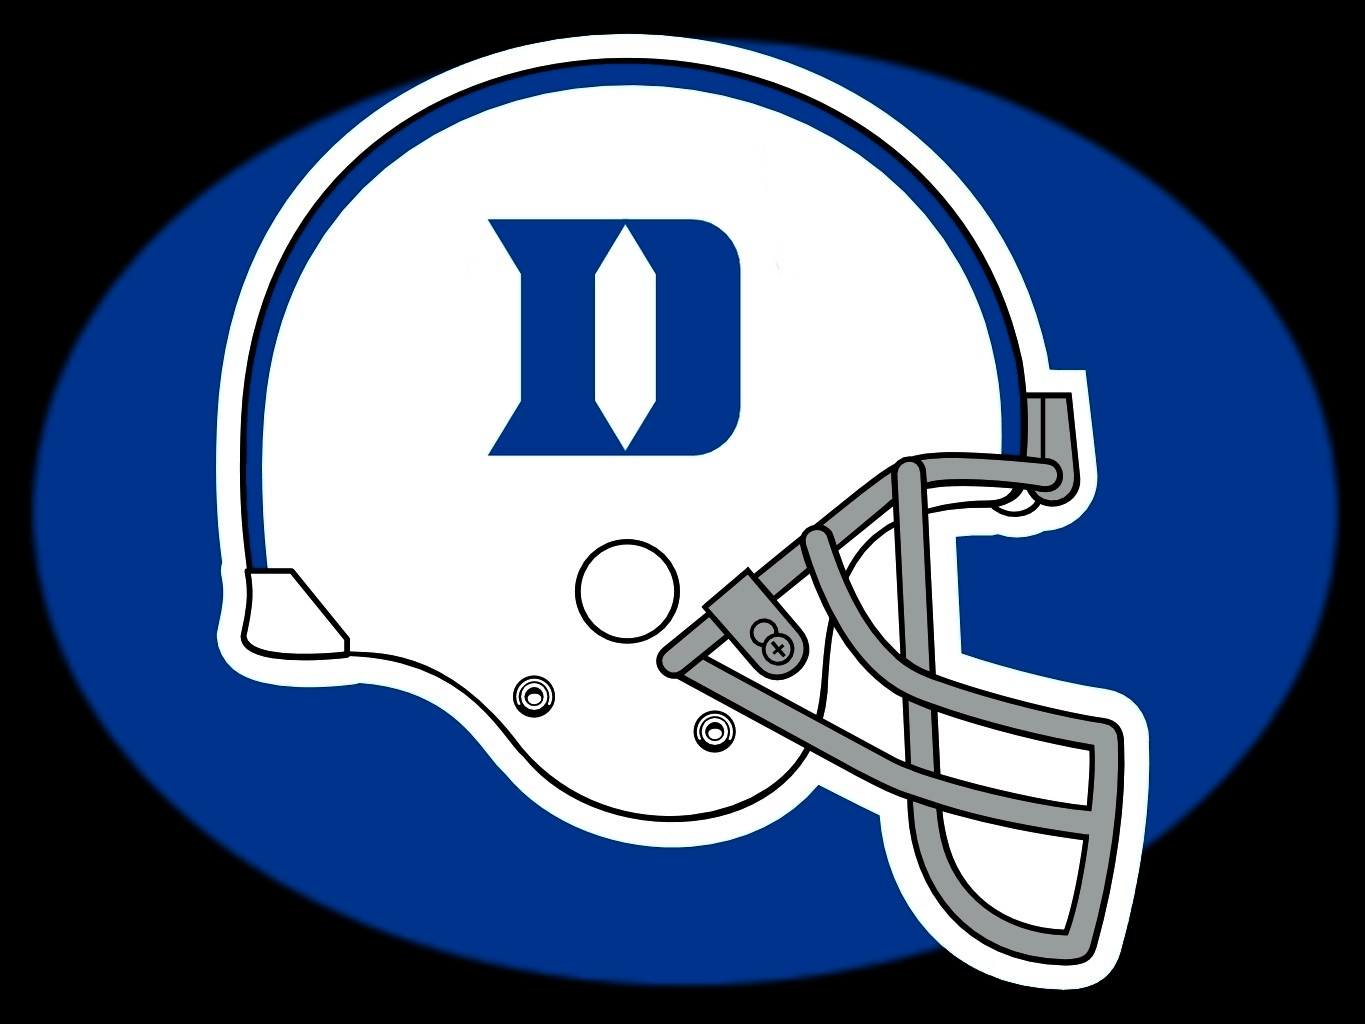 Duke Blue Devils. Click each